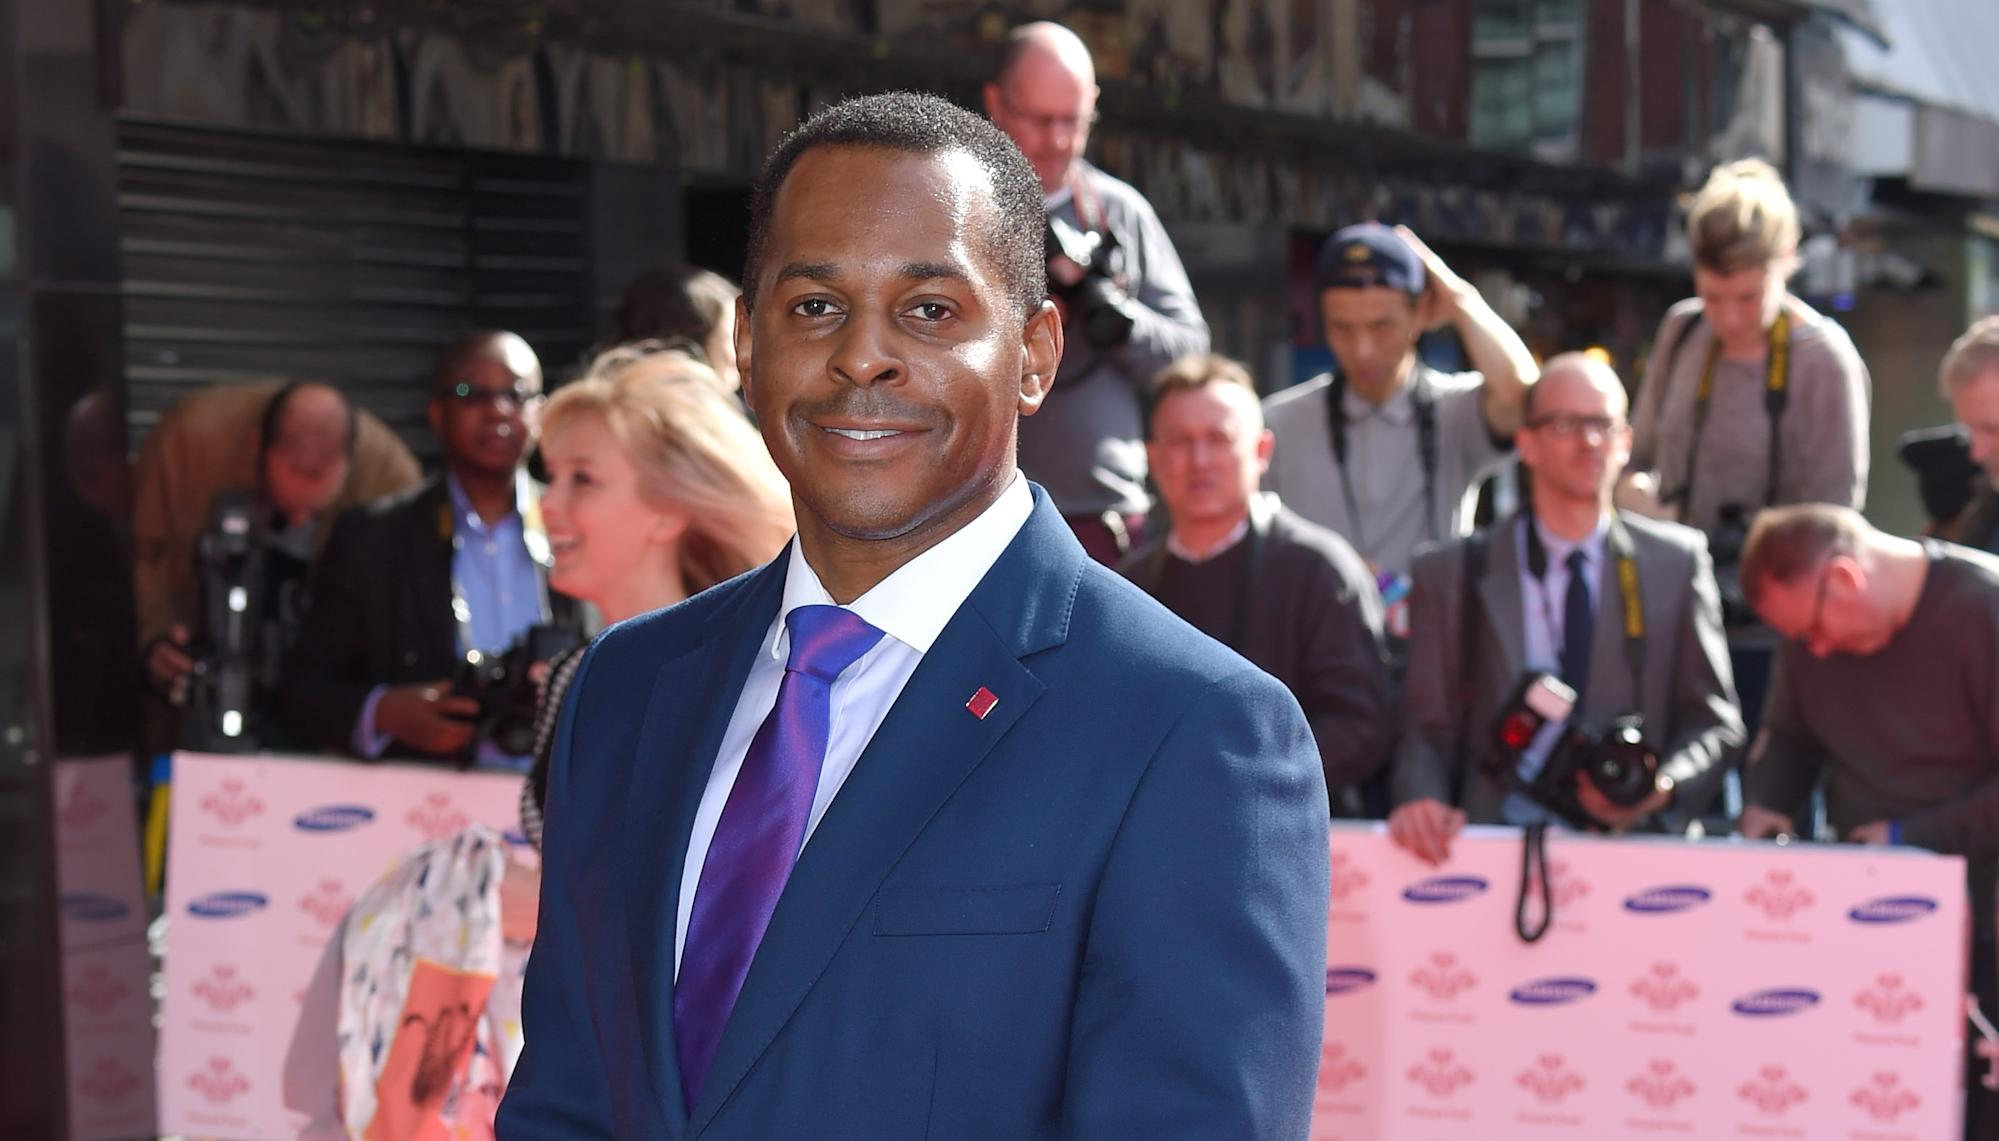 Andi Peters reveals he is racially profiled and followed in shops